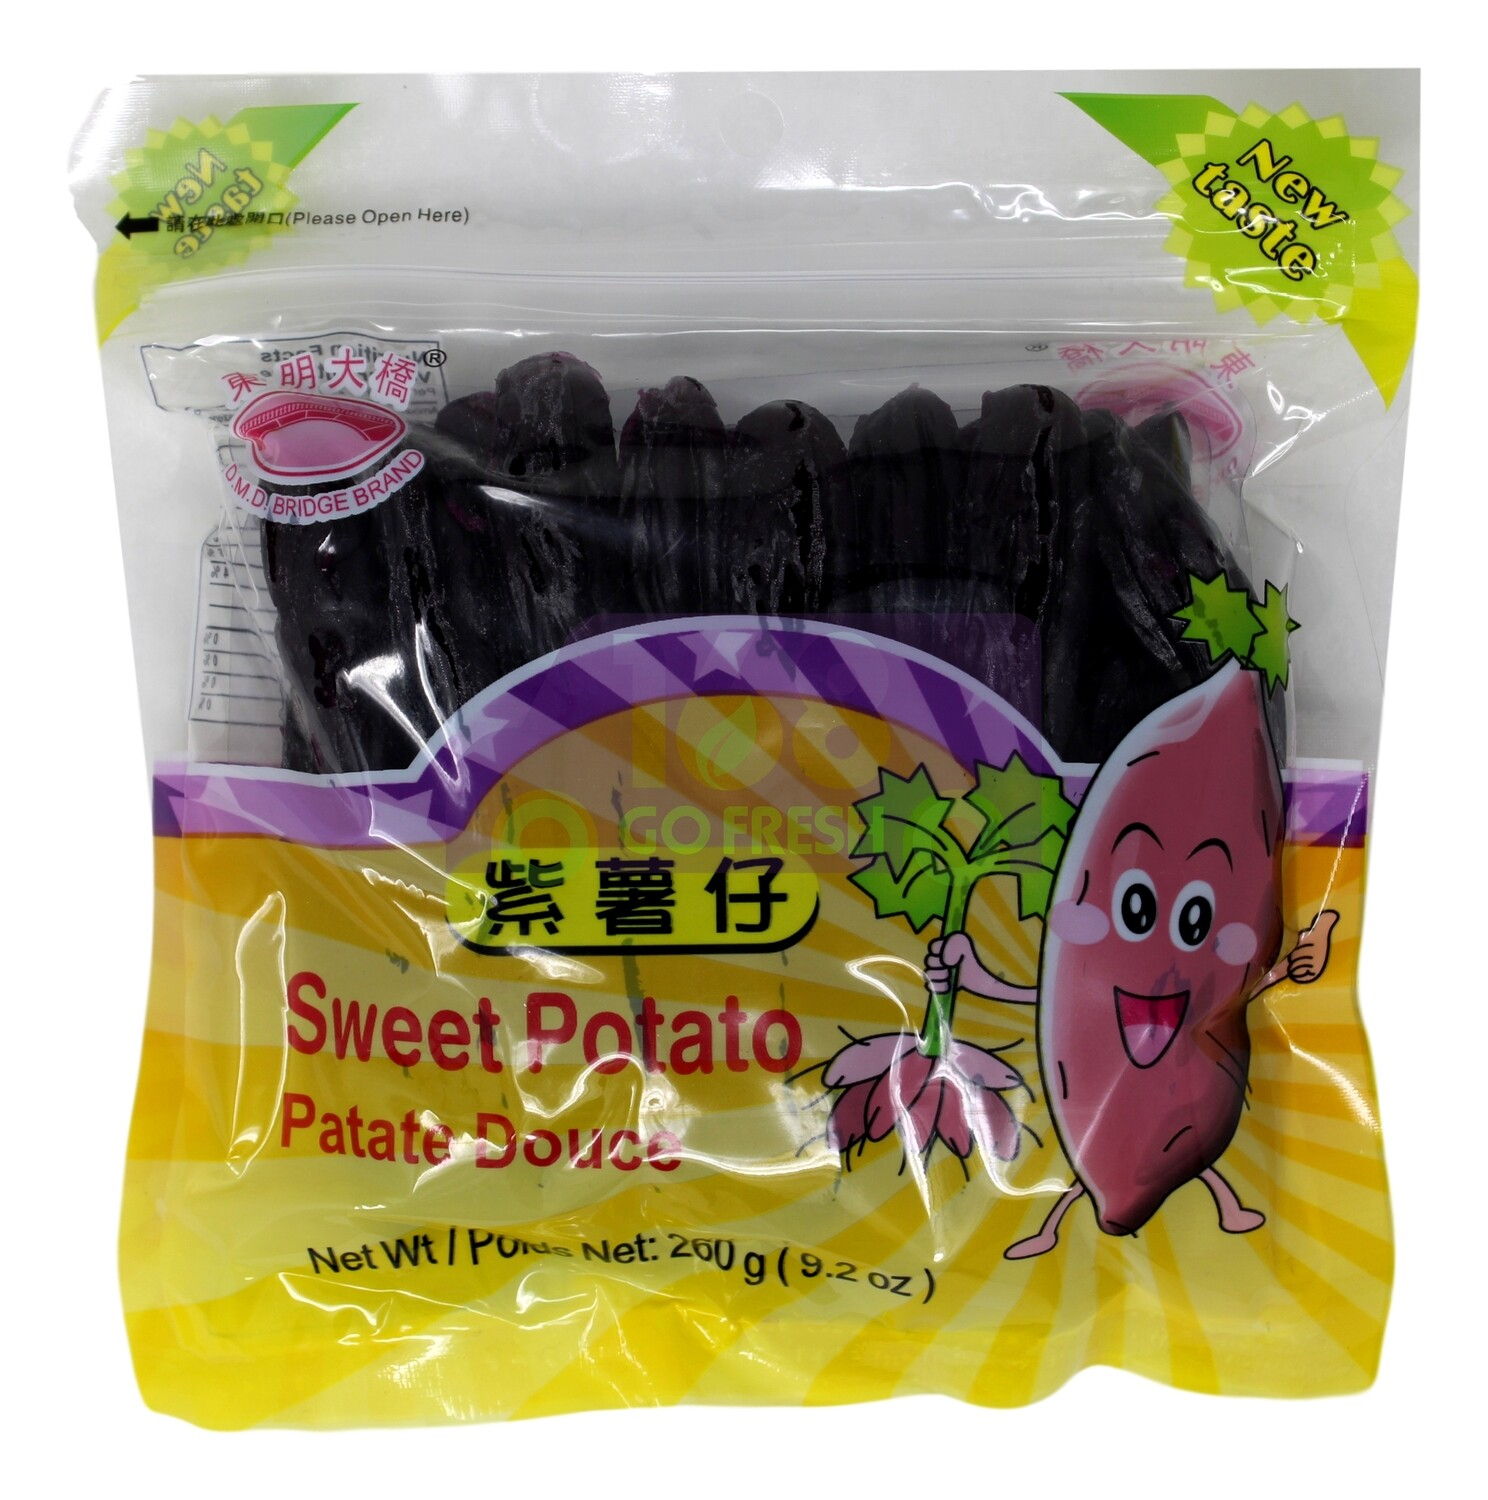 D.M.D BRIDGE BRAND PURPLE SWEET POTATO DOUCE 东明大桥 紫薯仔 (260G)